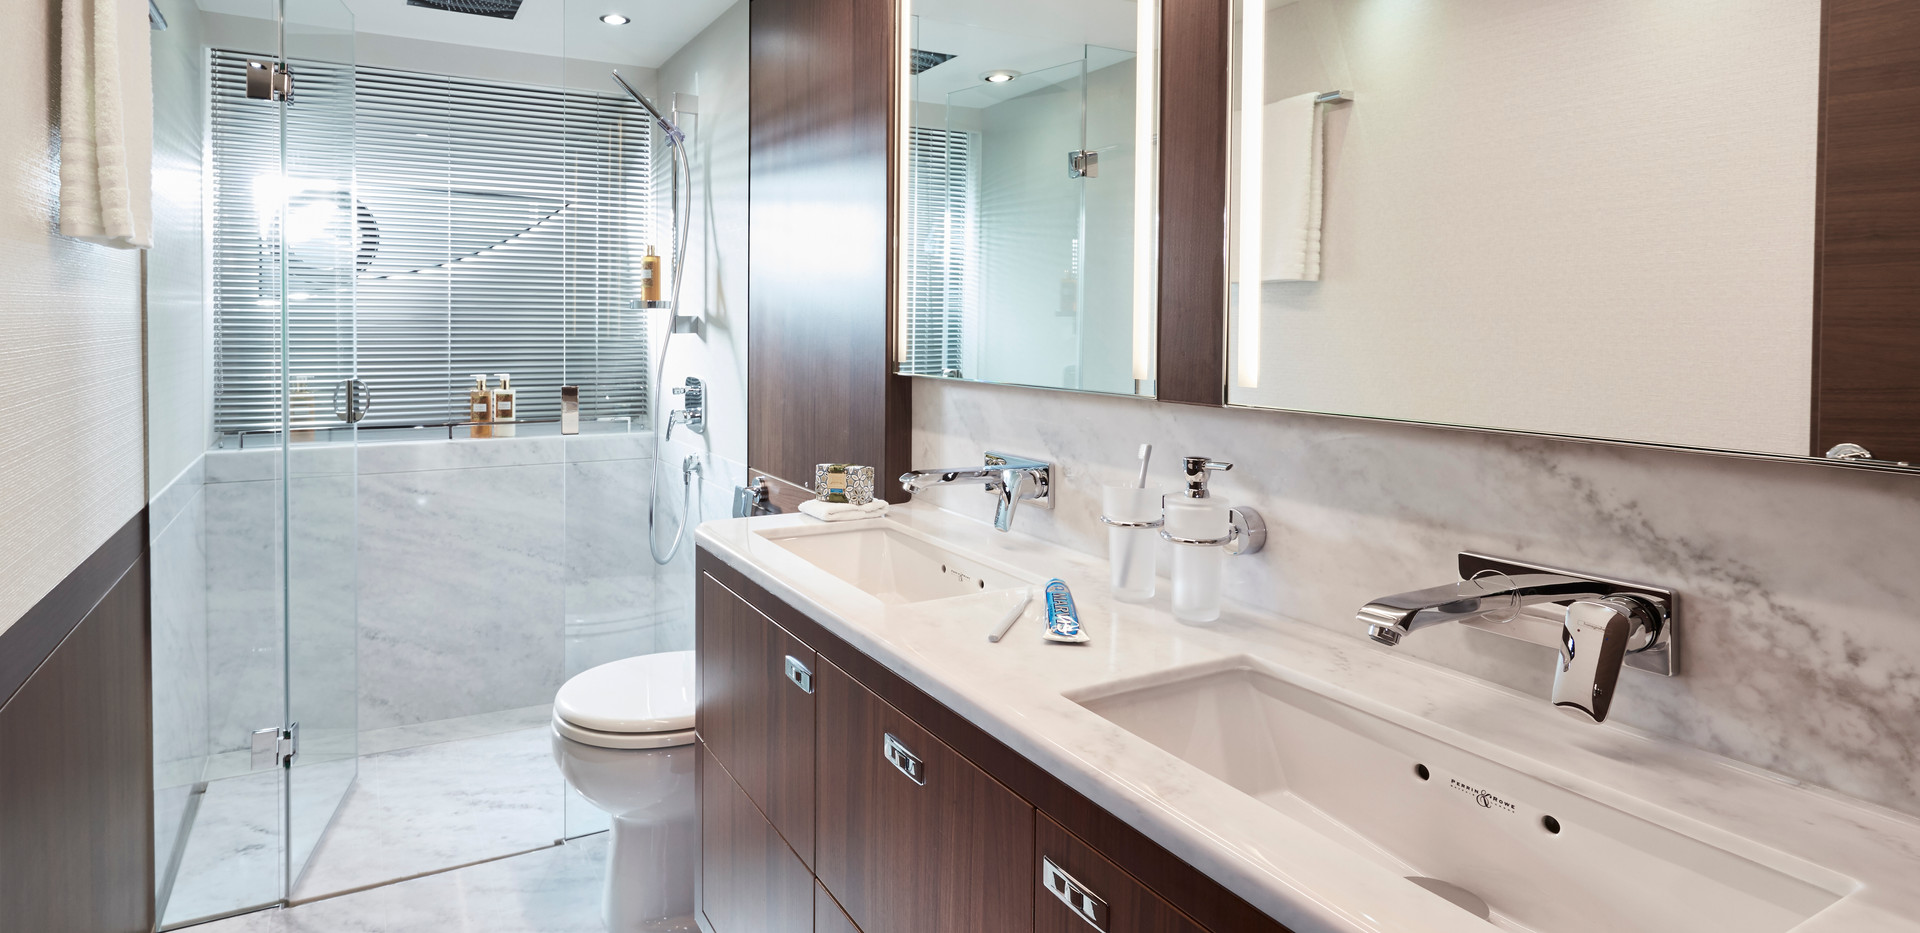 s78-interior-owners-bathroomAbromowitz S